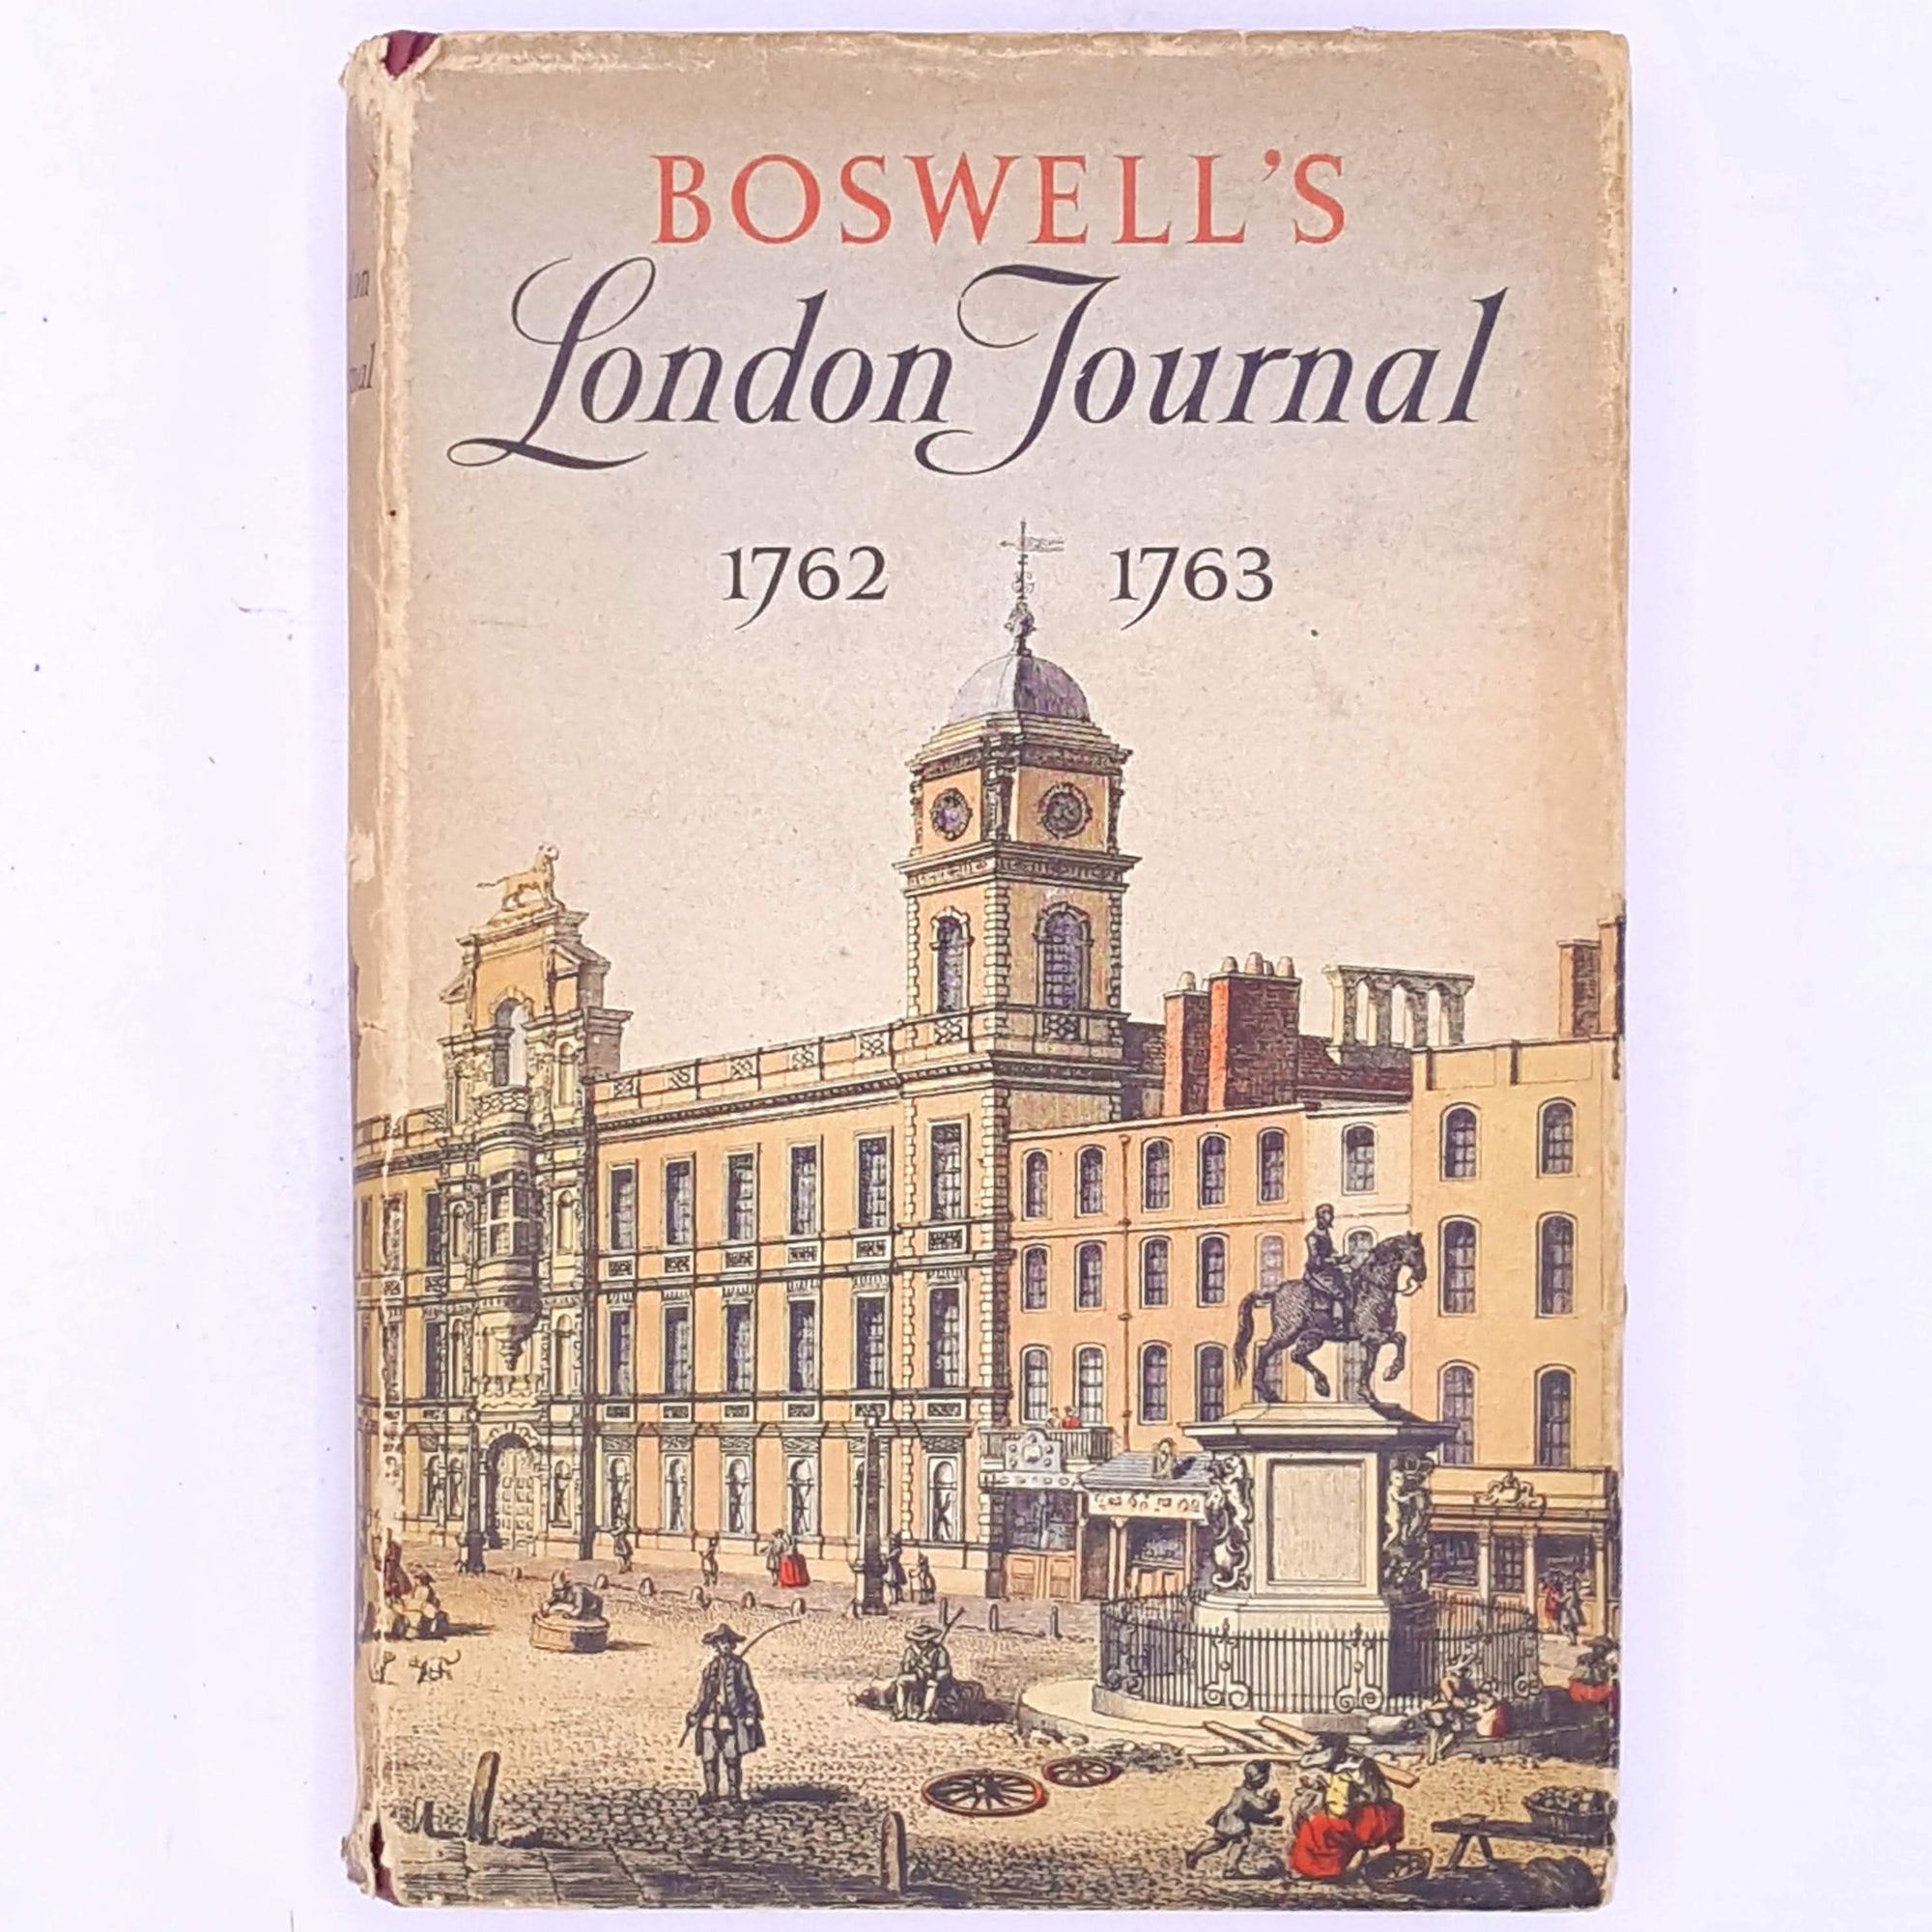 Boswell's London Journal 1762 - 1763